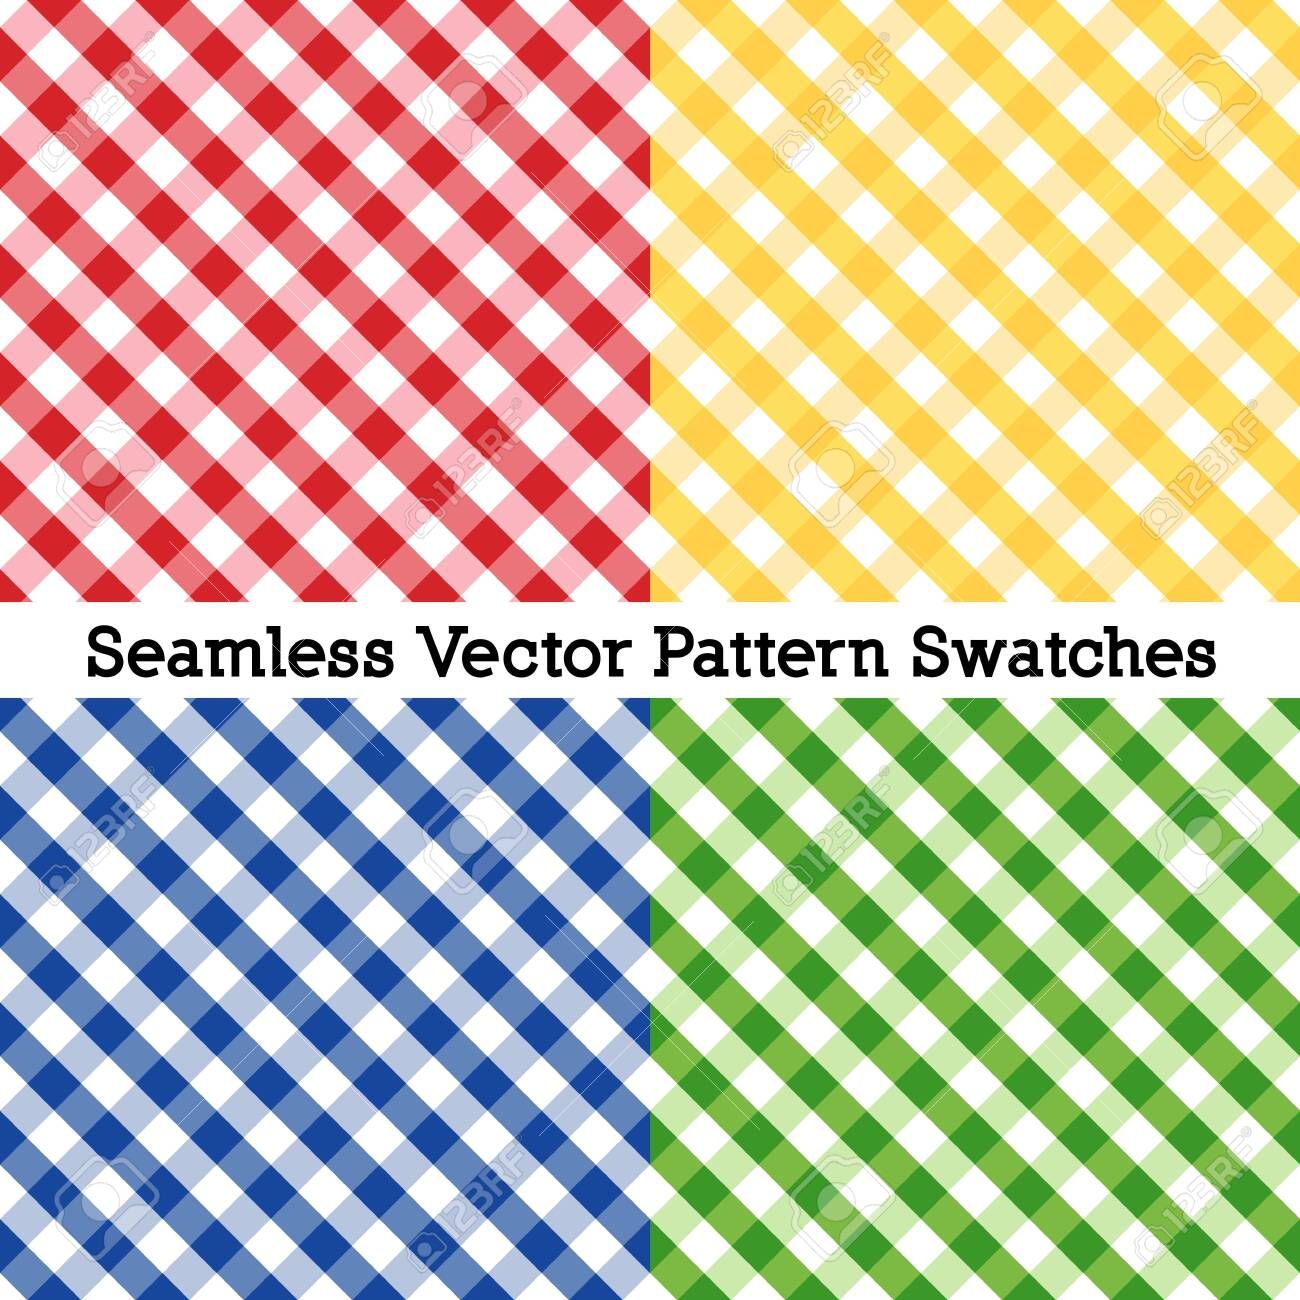 Gingham Cross Weave Seamless Check Patterns - 136310490